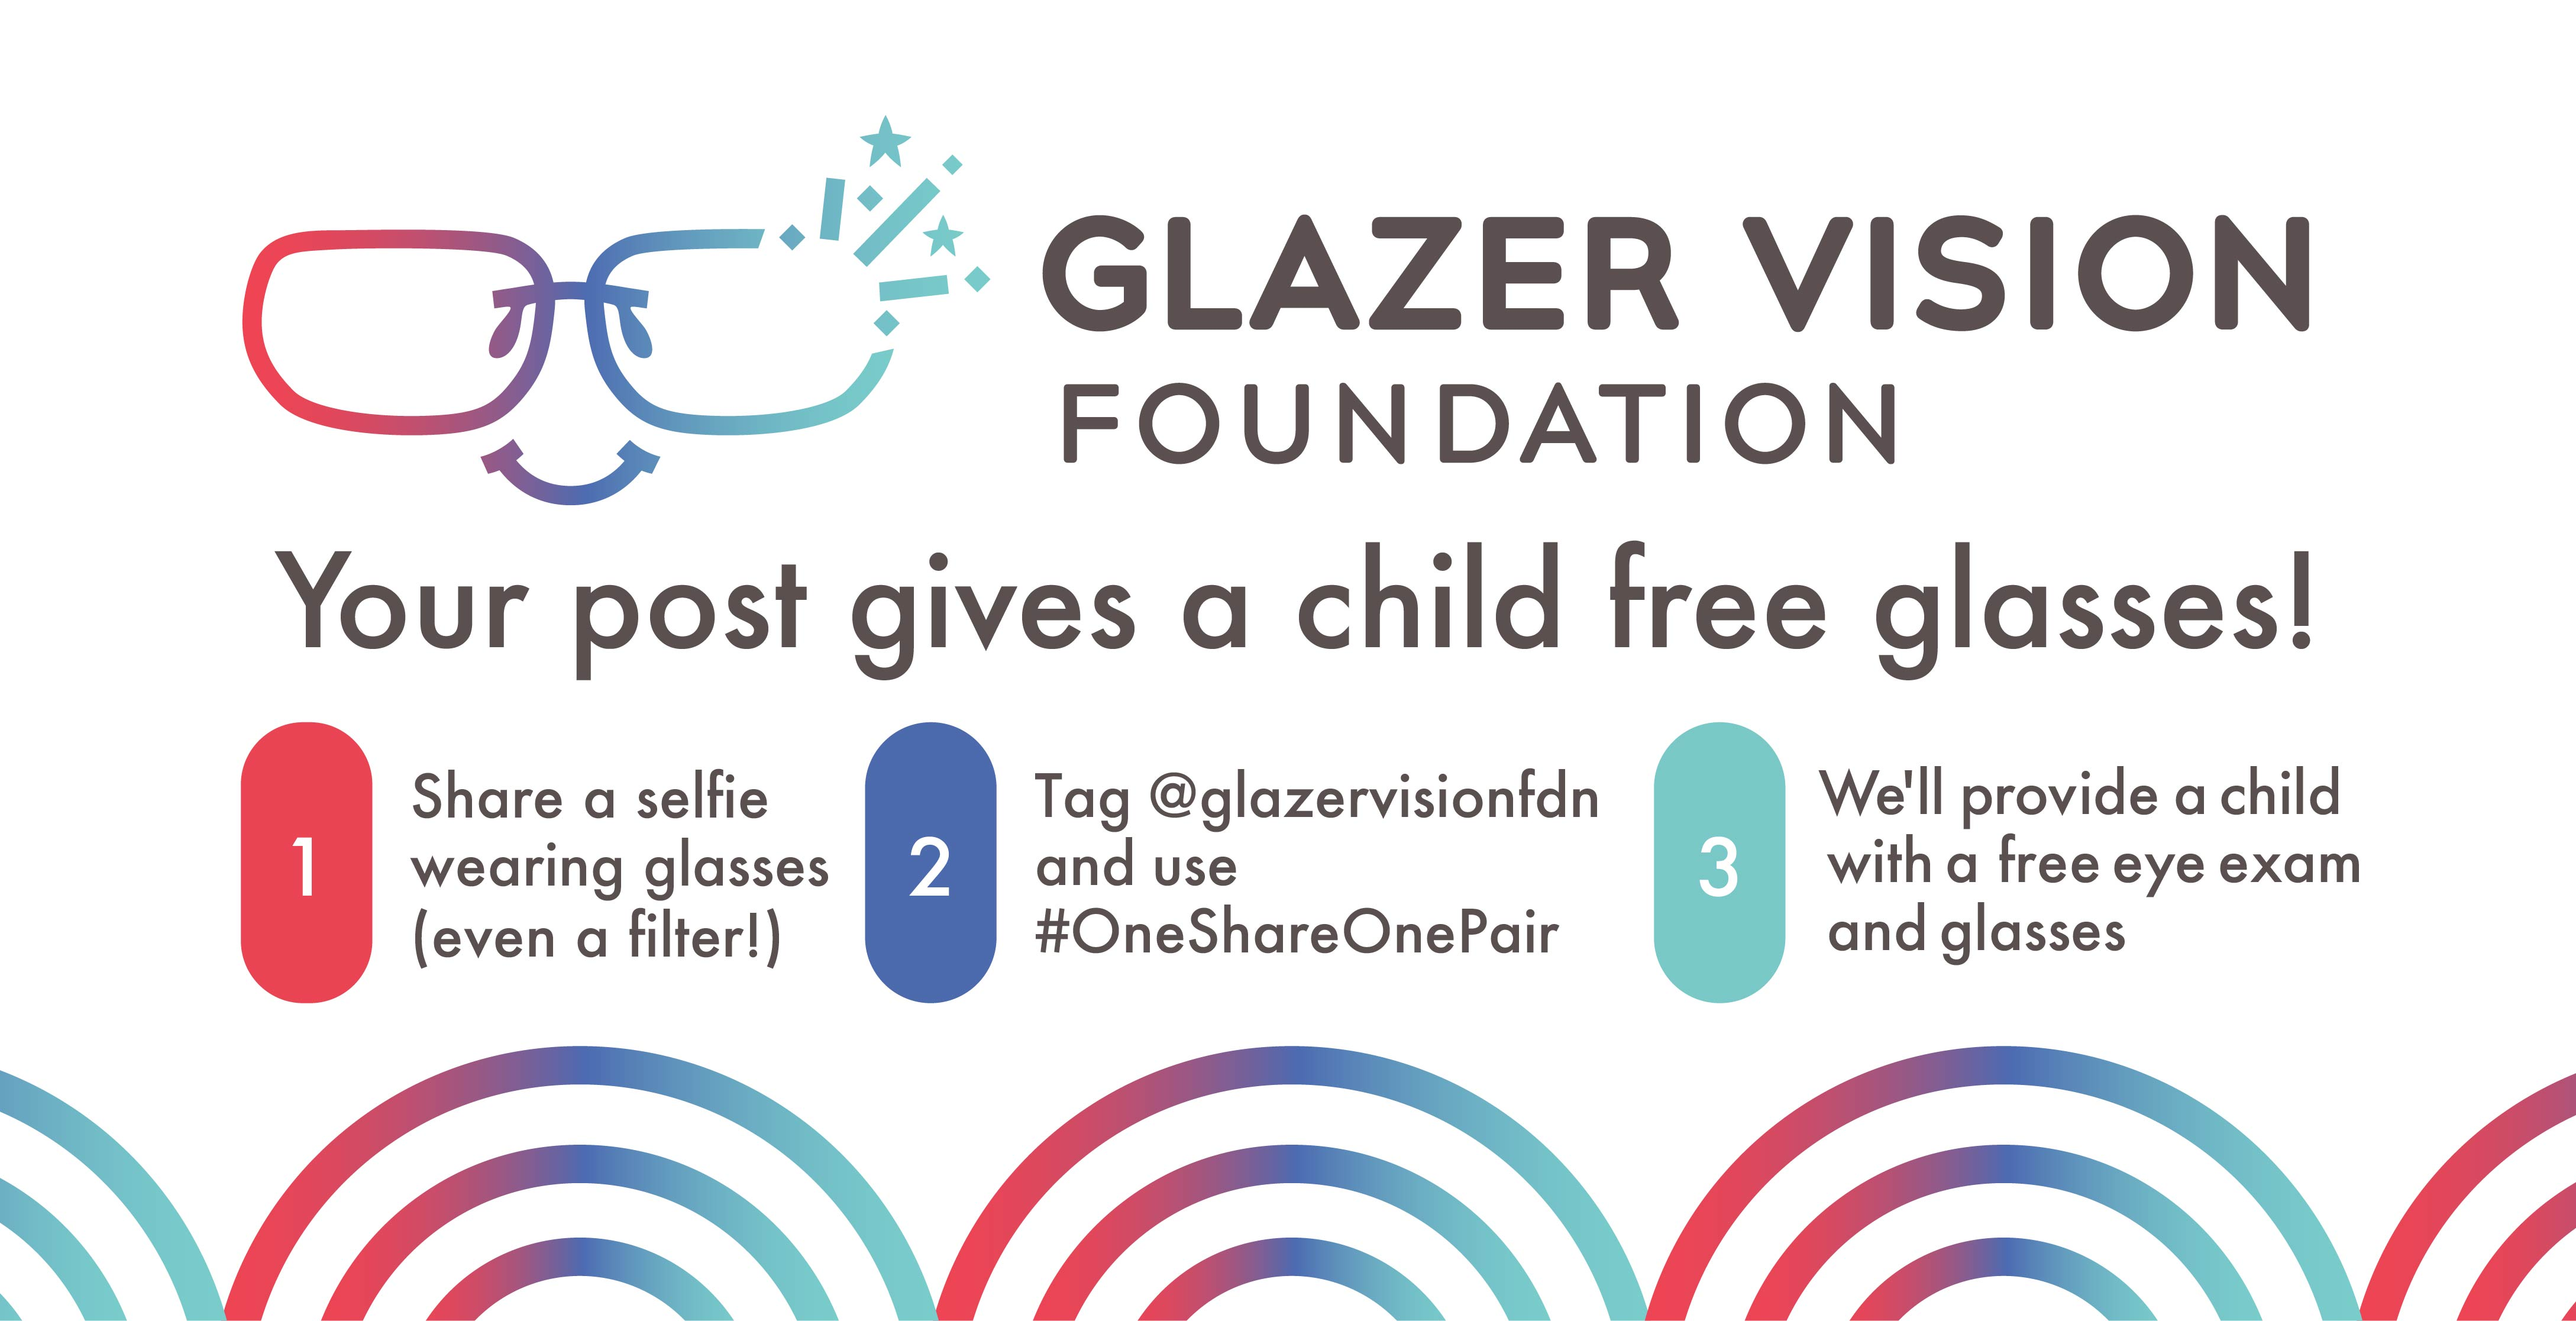 Your post gives a child free glasses